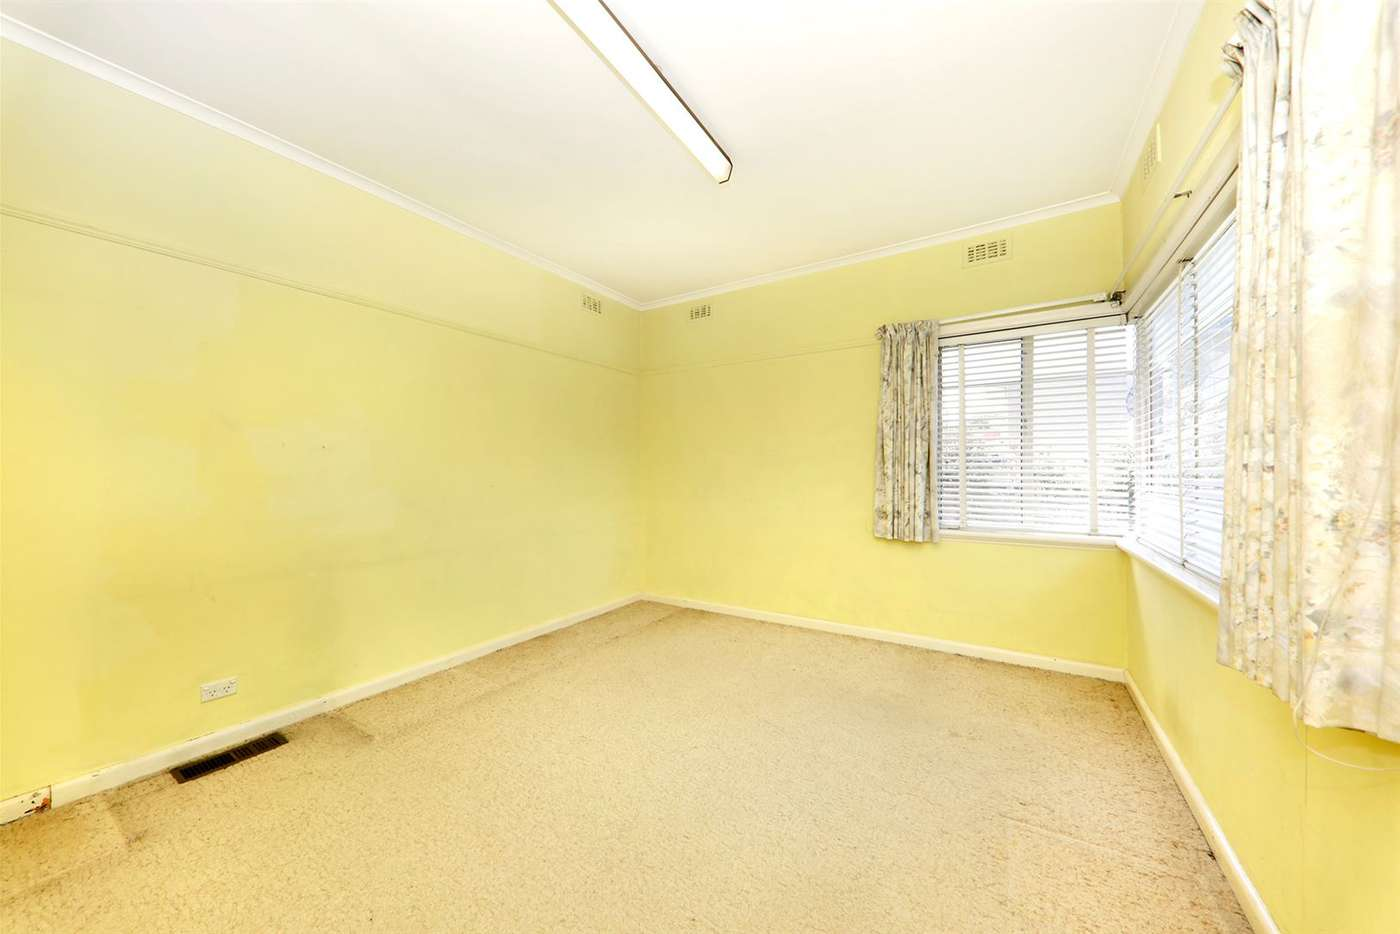 Sixth view of Homely house listing, 15 Kenny Street, Balwyn North VIC 3104